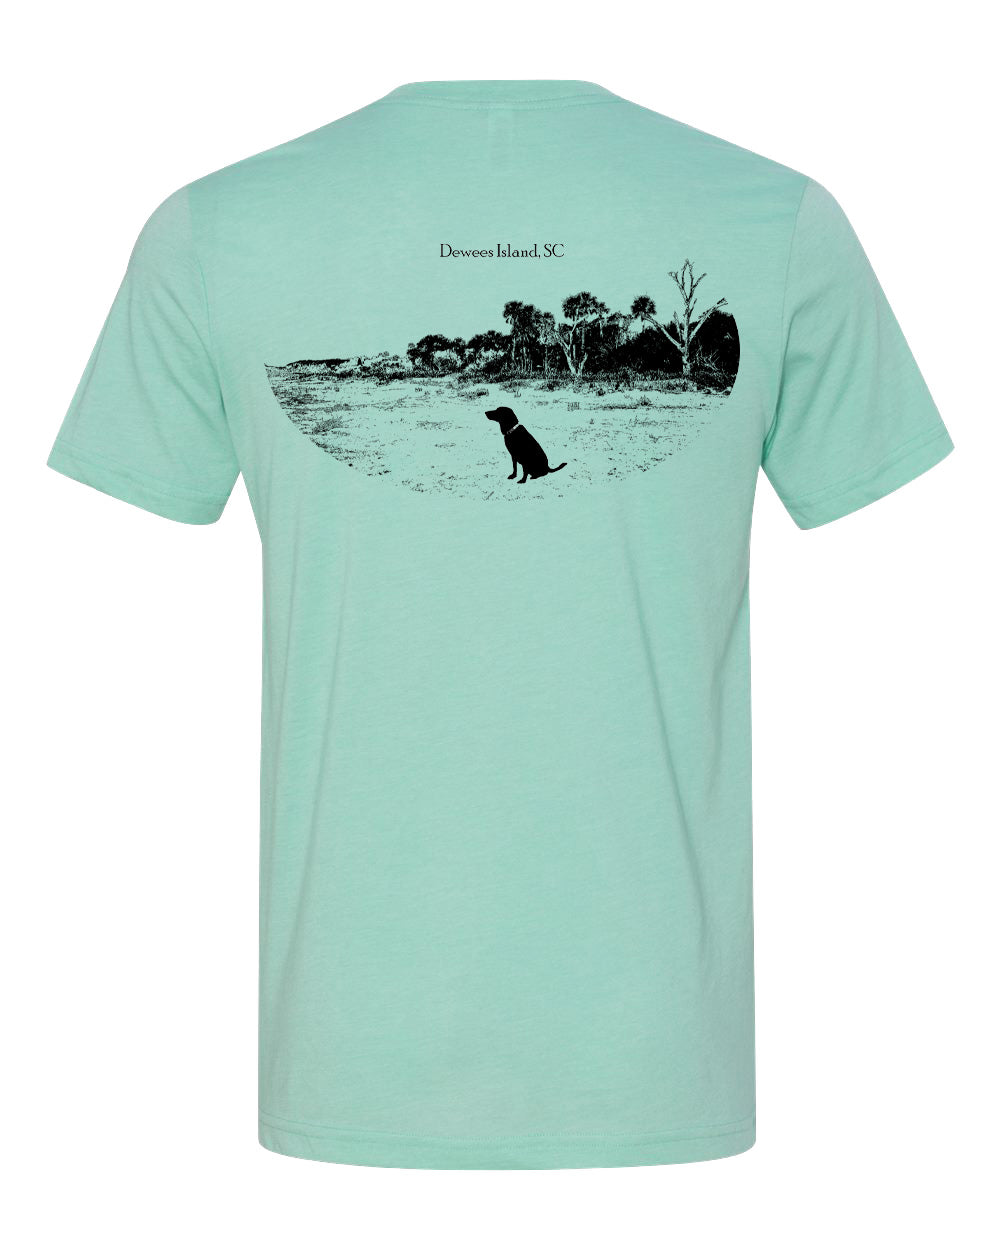 Dewees Island Short Sleeve T-shirt